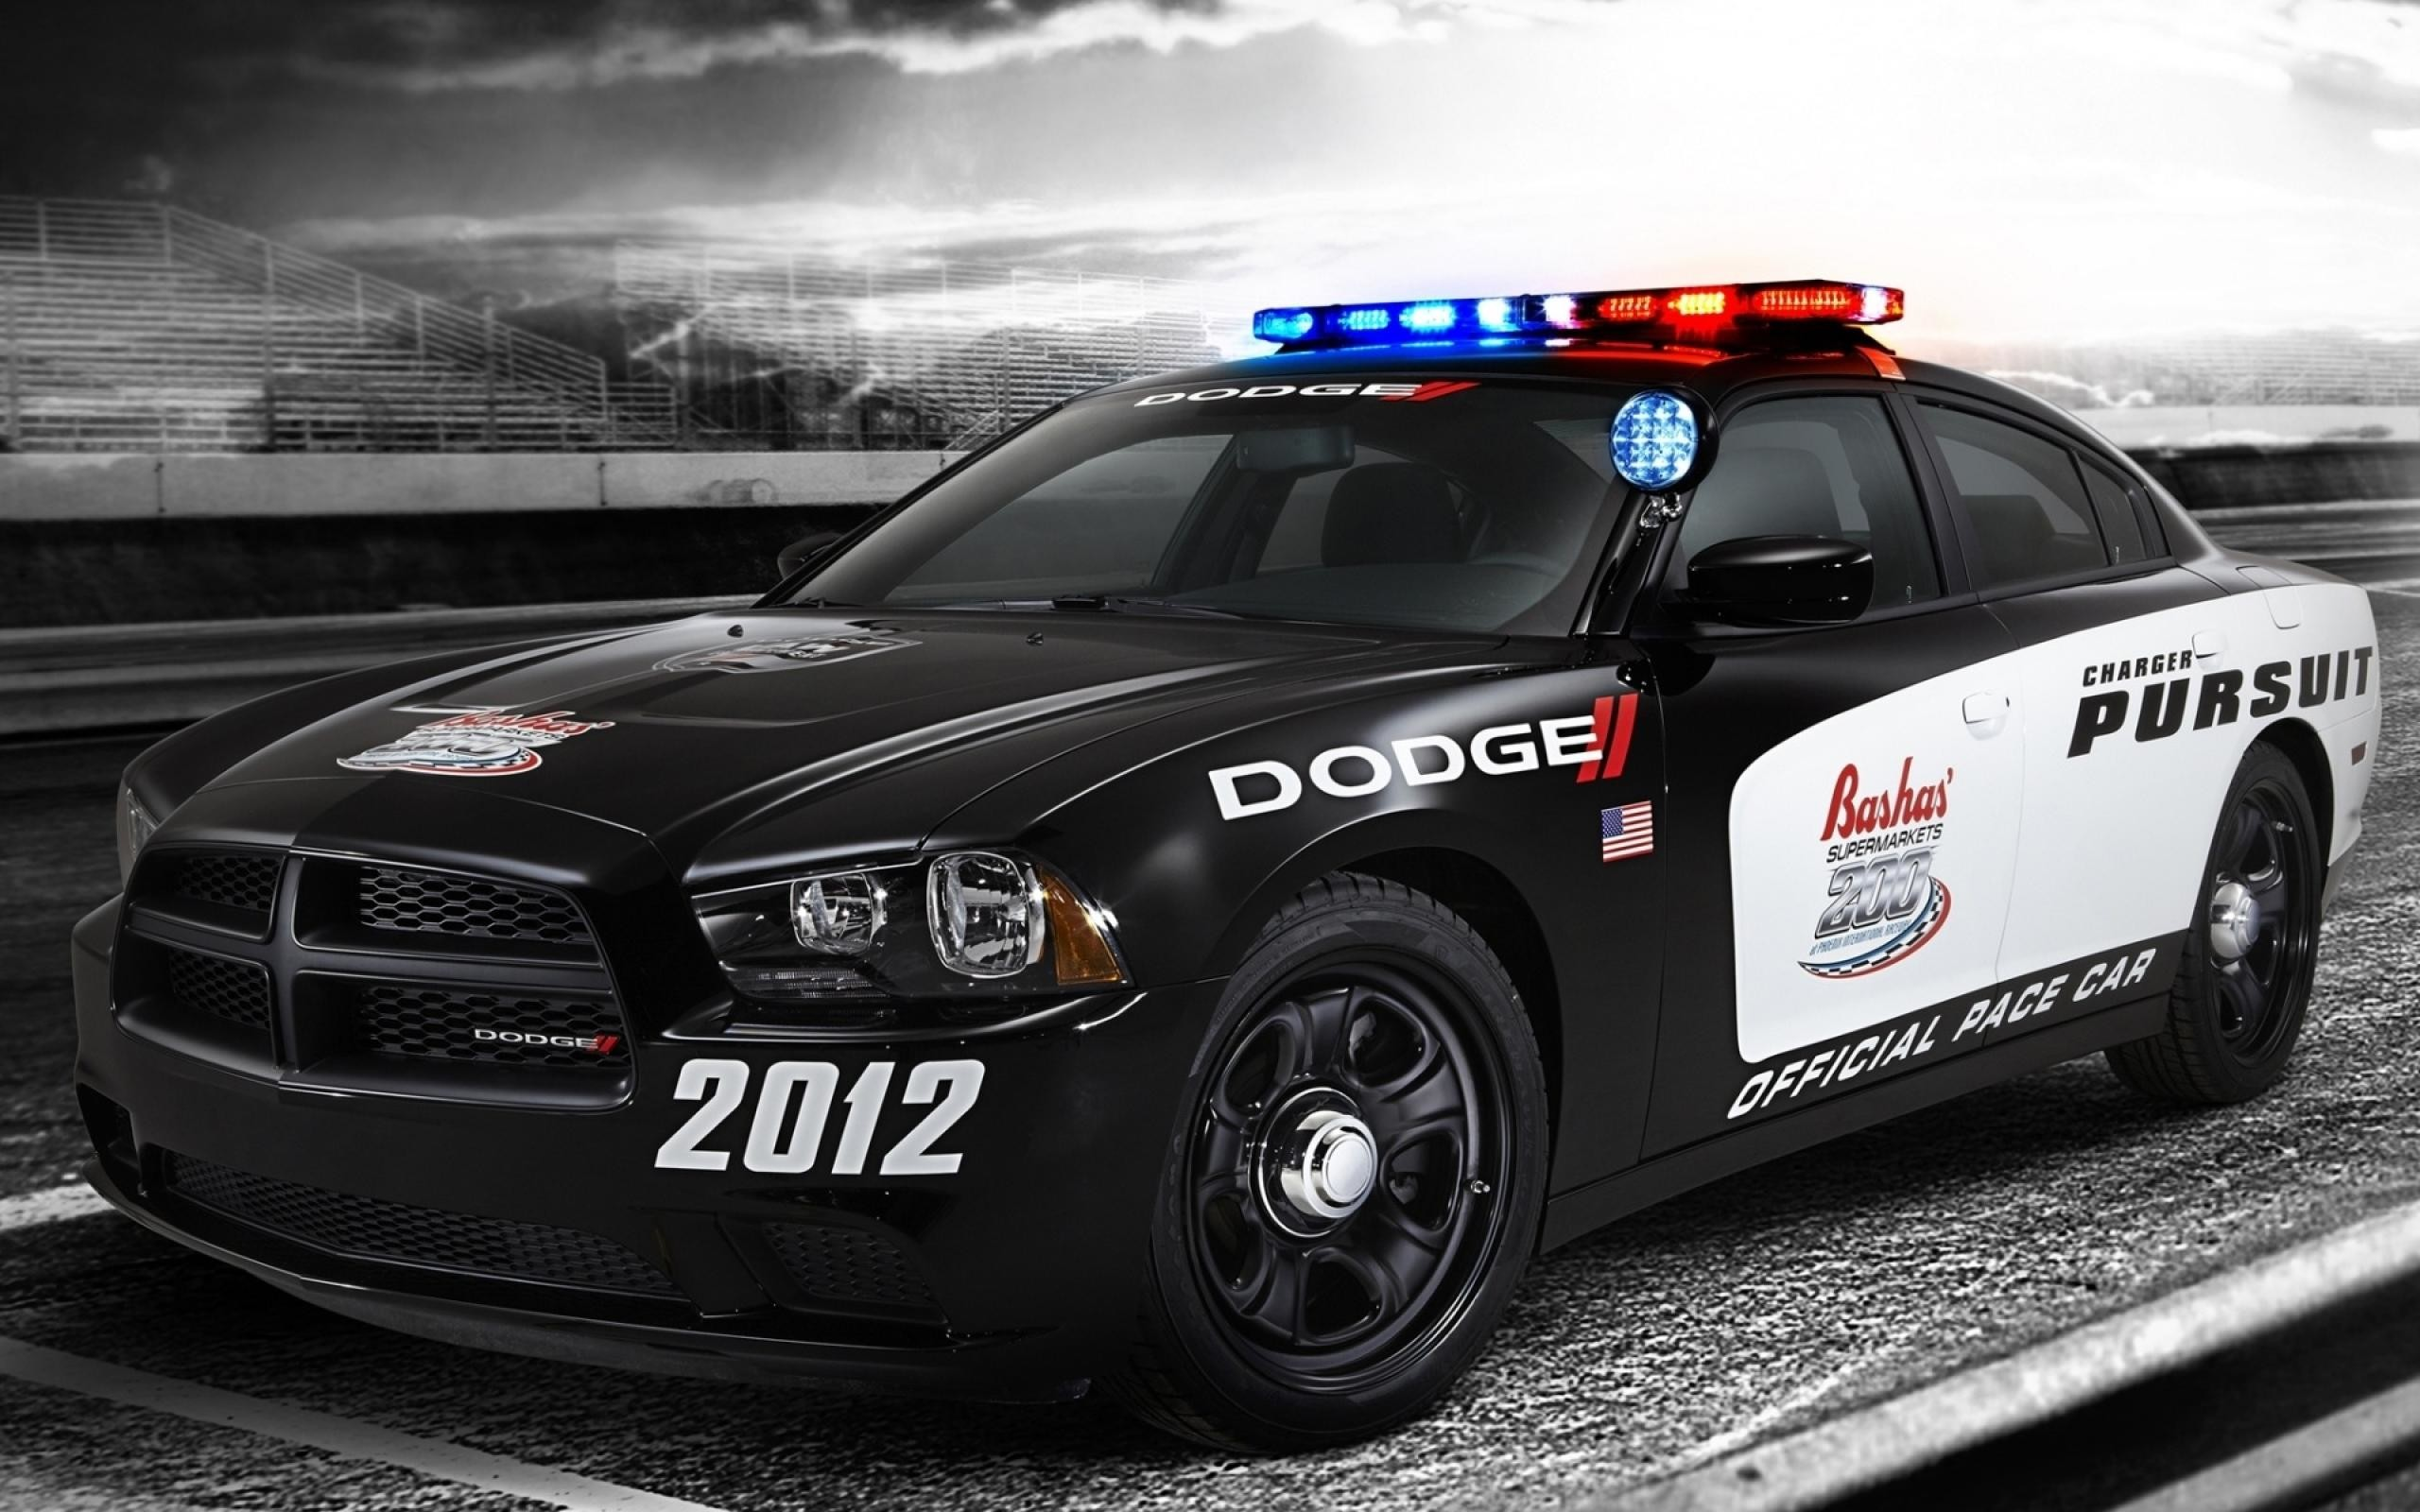 Res: 2560x1600, Police Car Wallpaper High Resolution